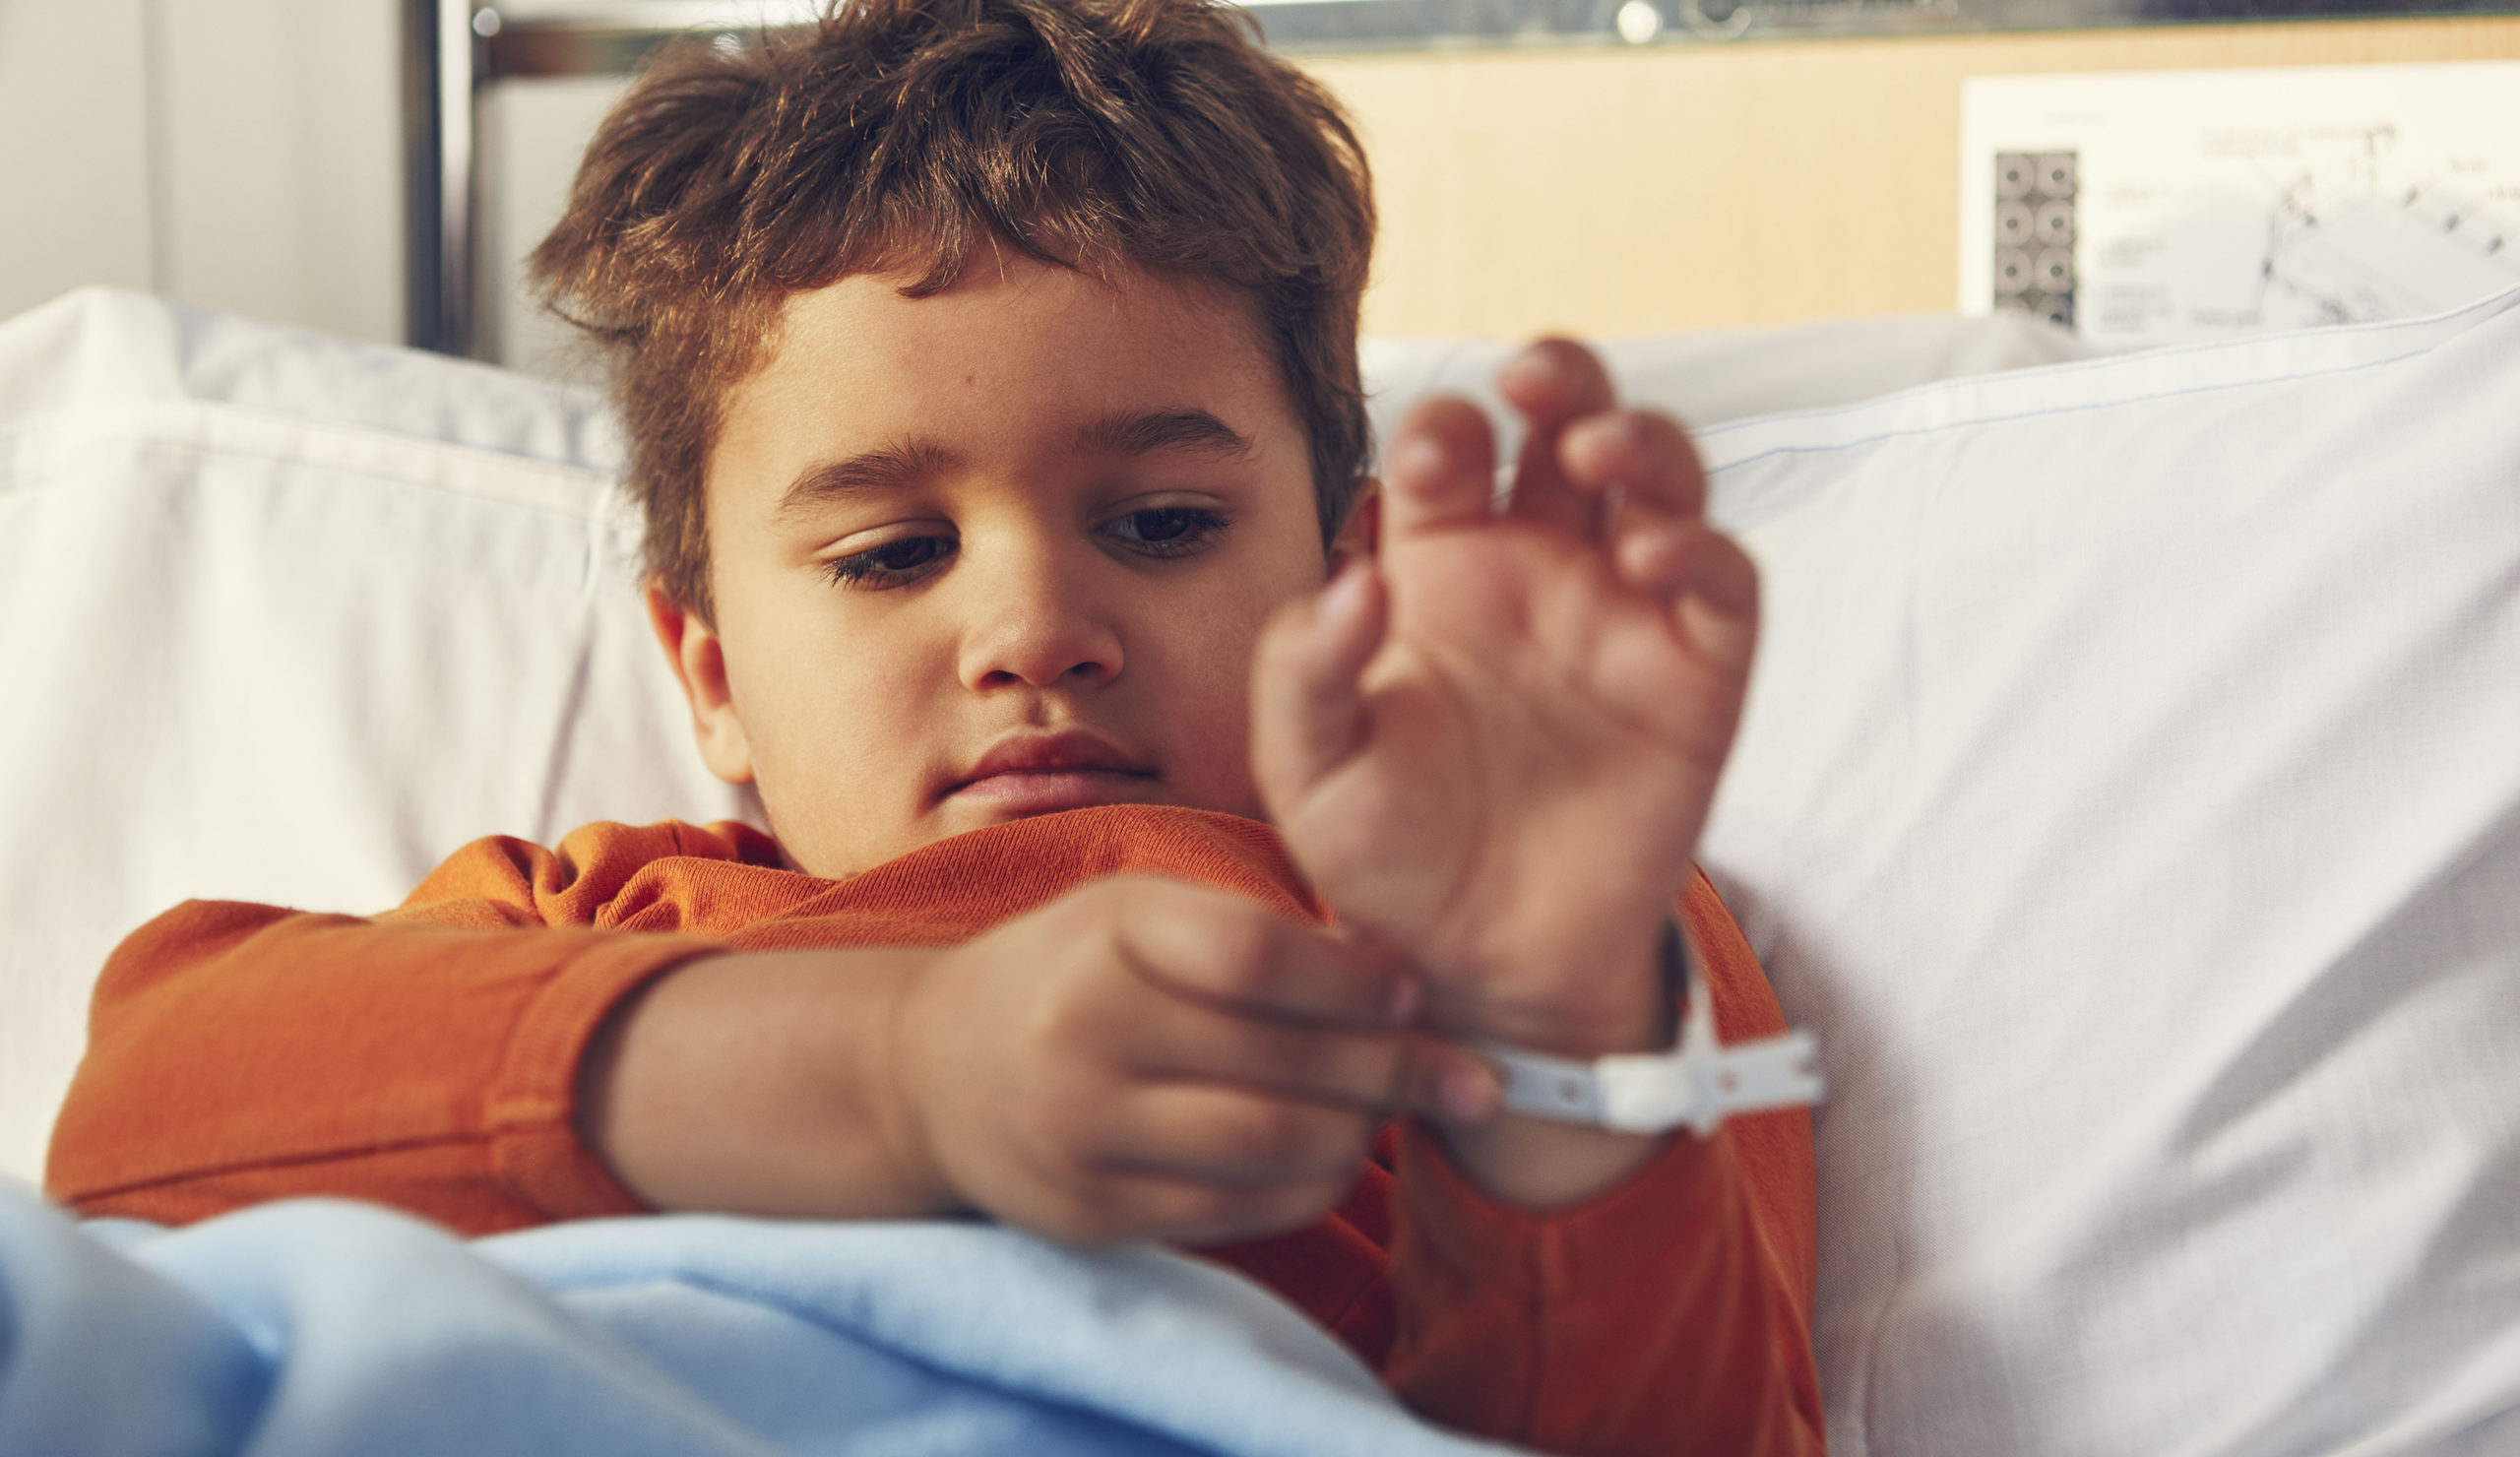 Stem cells in study against type 1 diabetes in children